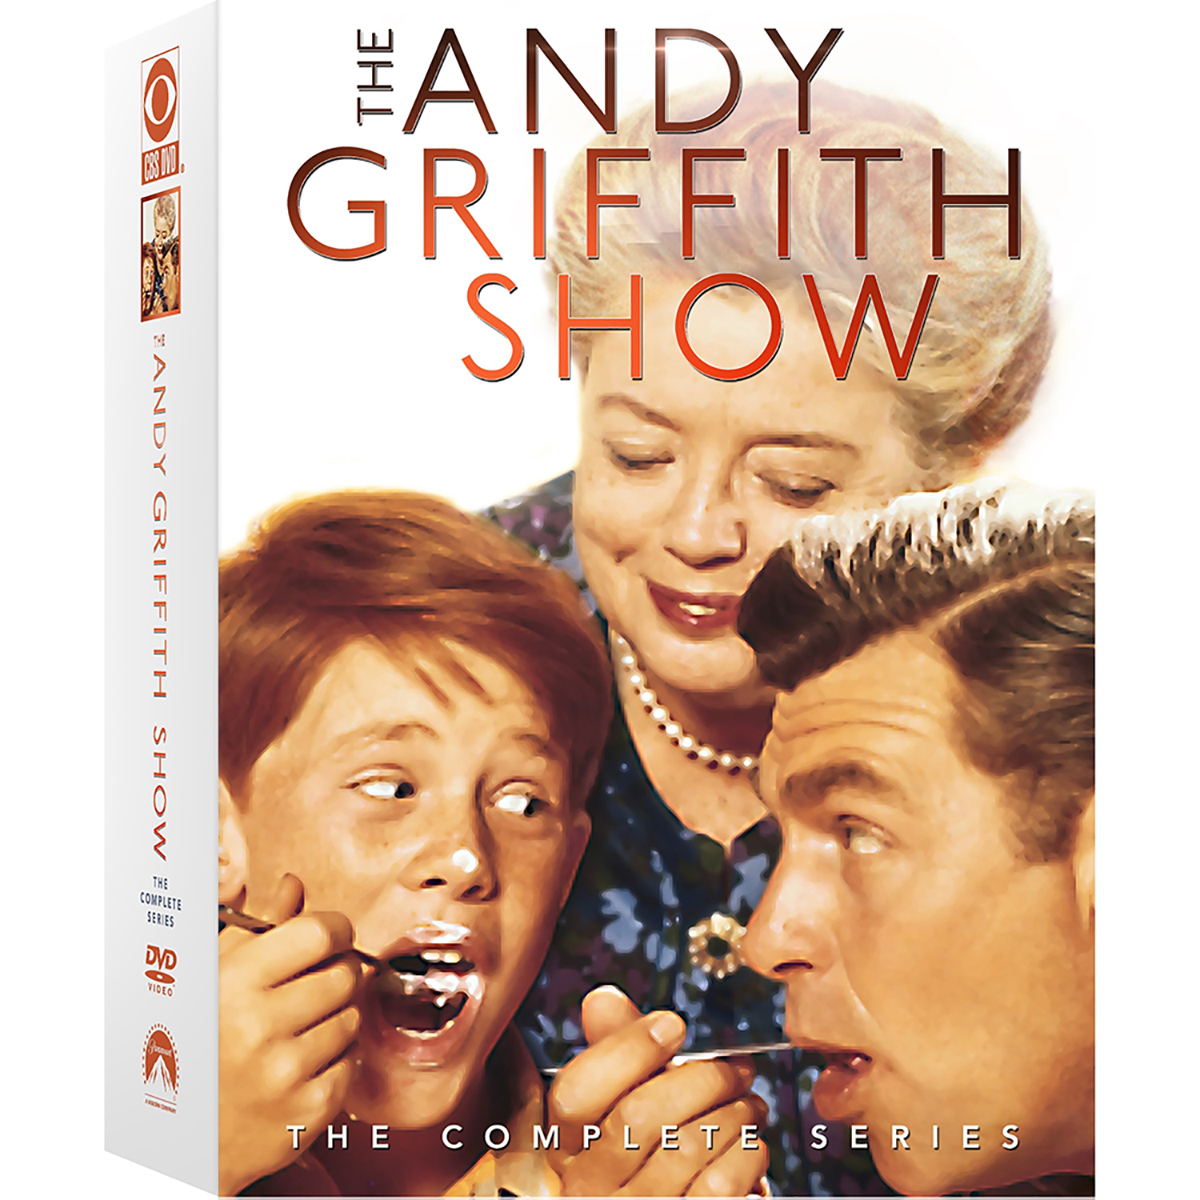 the andy griffith show: complete series collection (dvd) - walmart